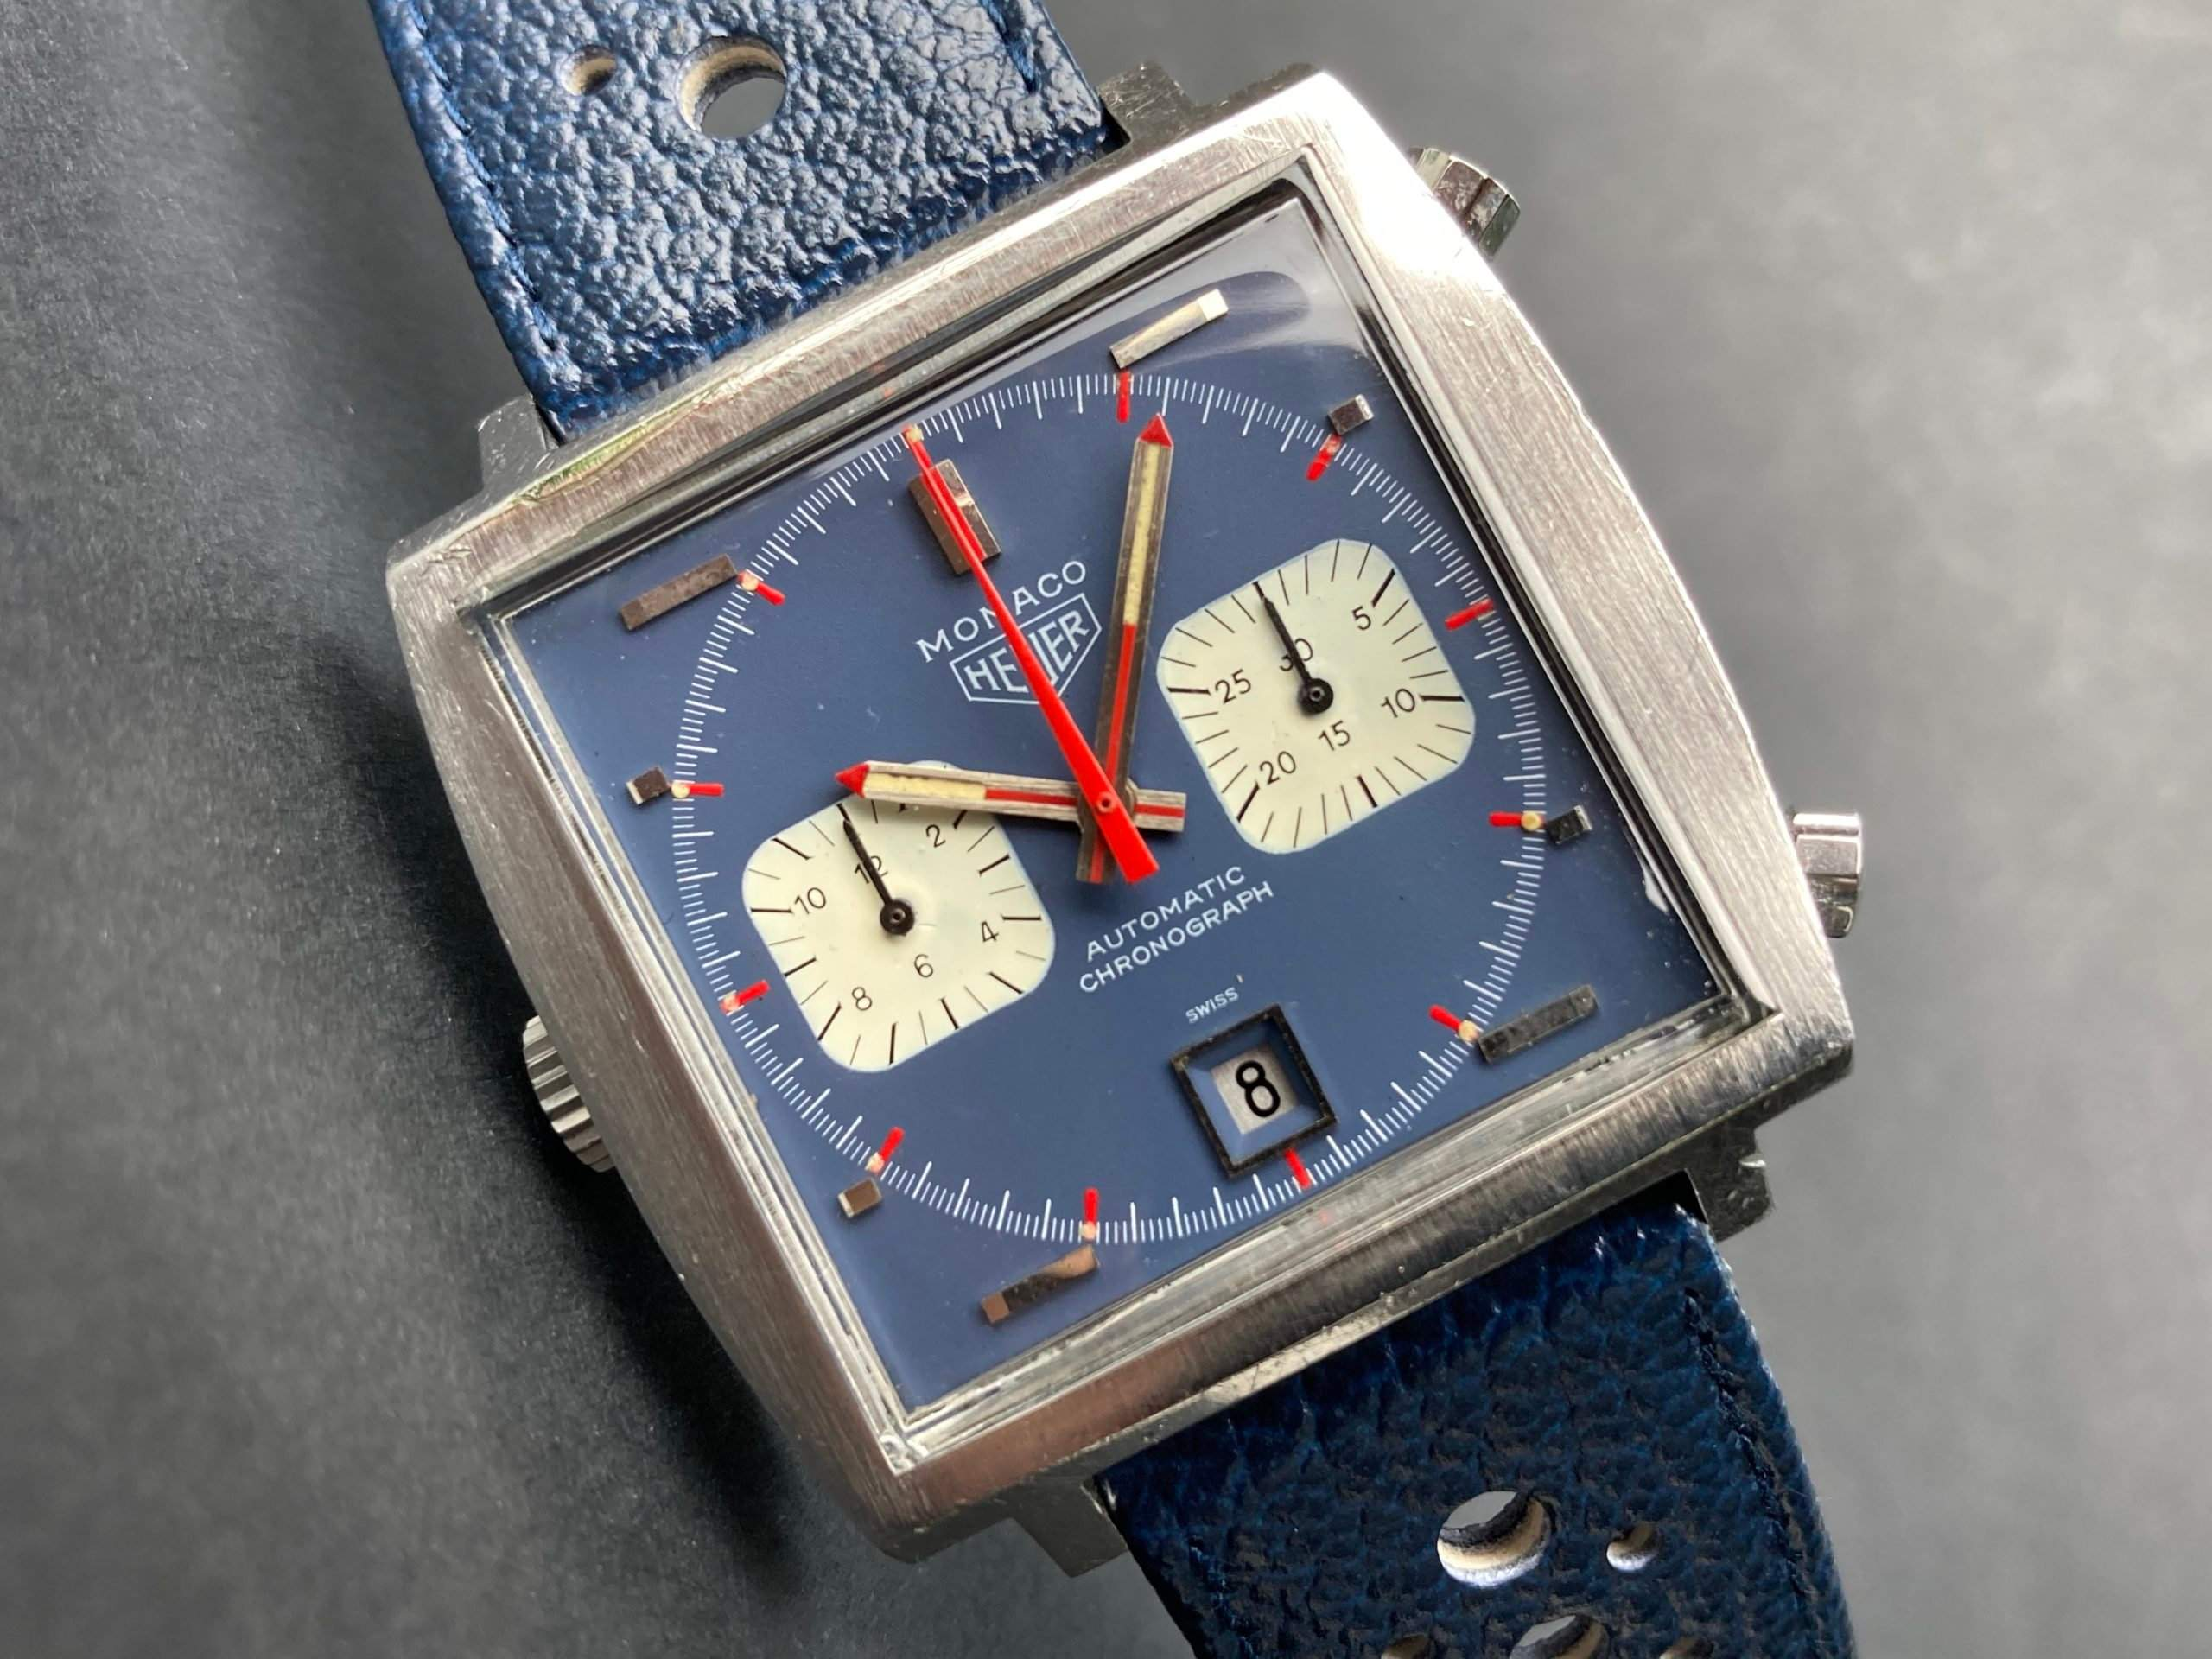 Heuer's Monaco was the first automatic chronograph available to global markets